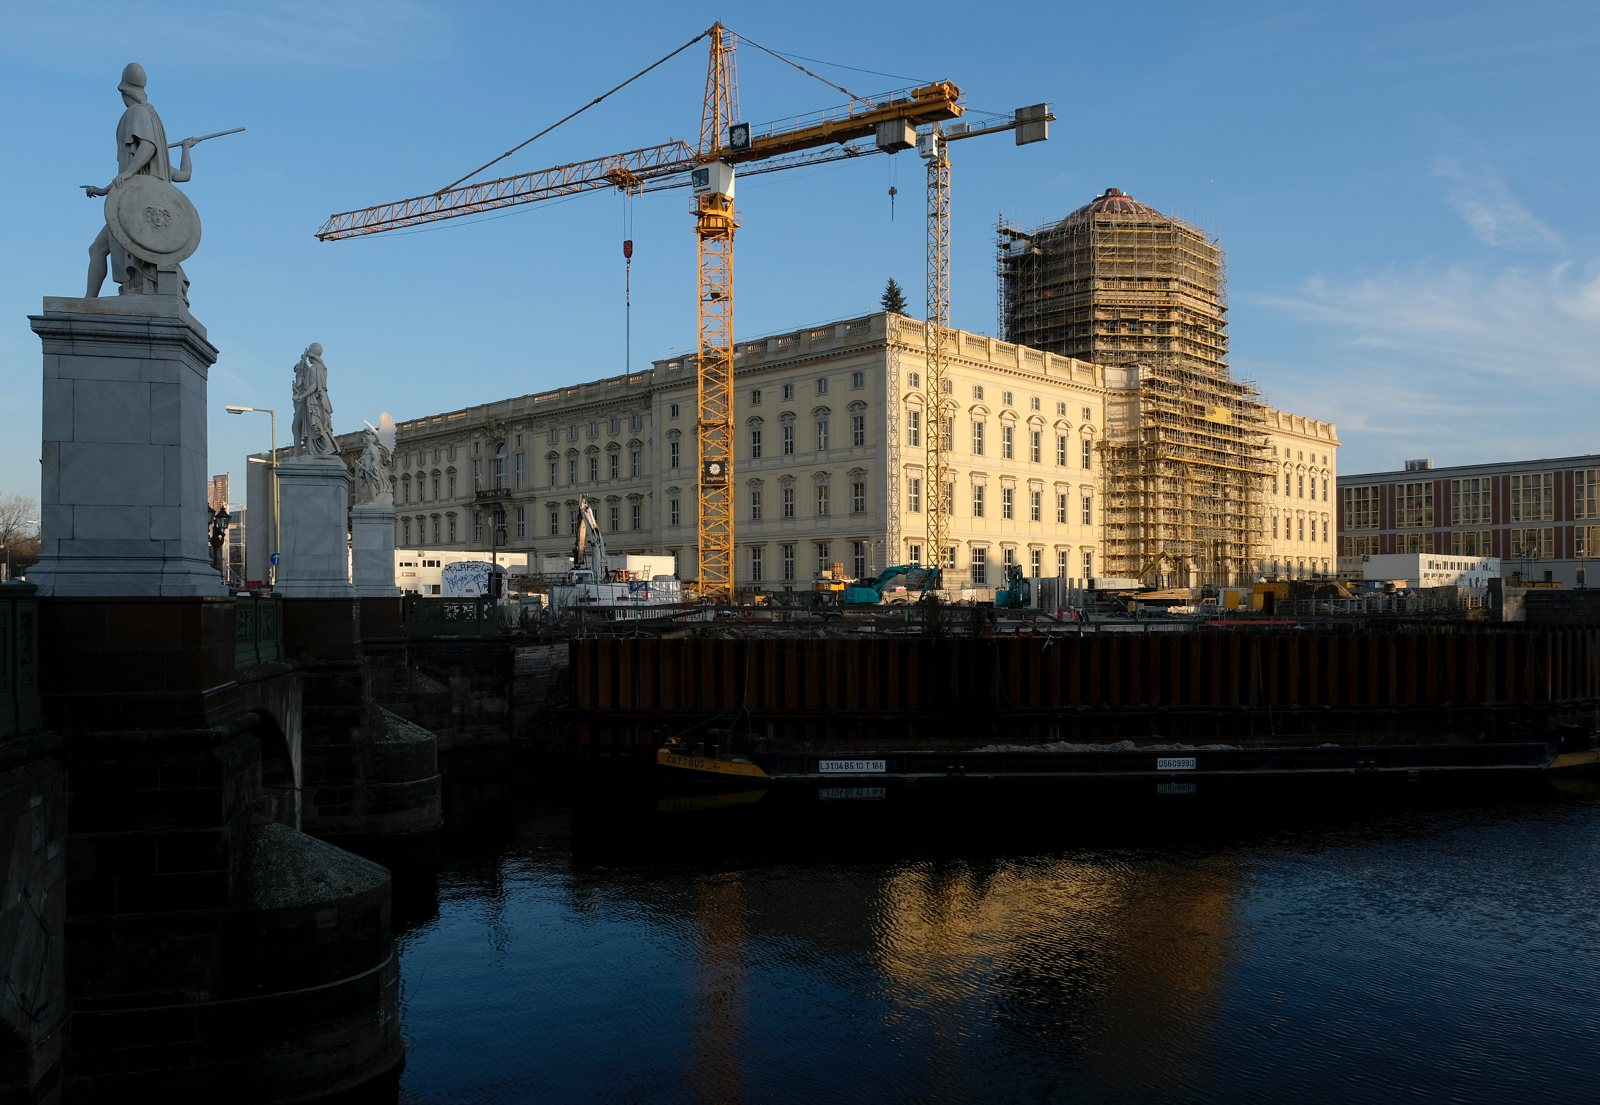 The reconstruction of the Berlin Palace, January 2020